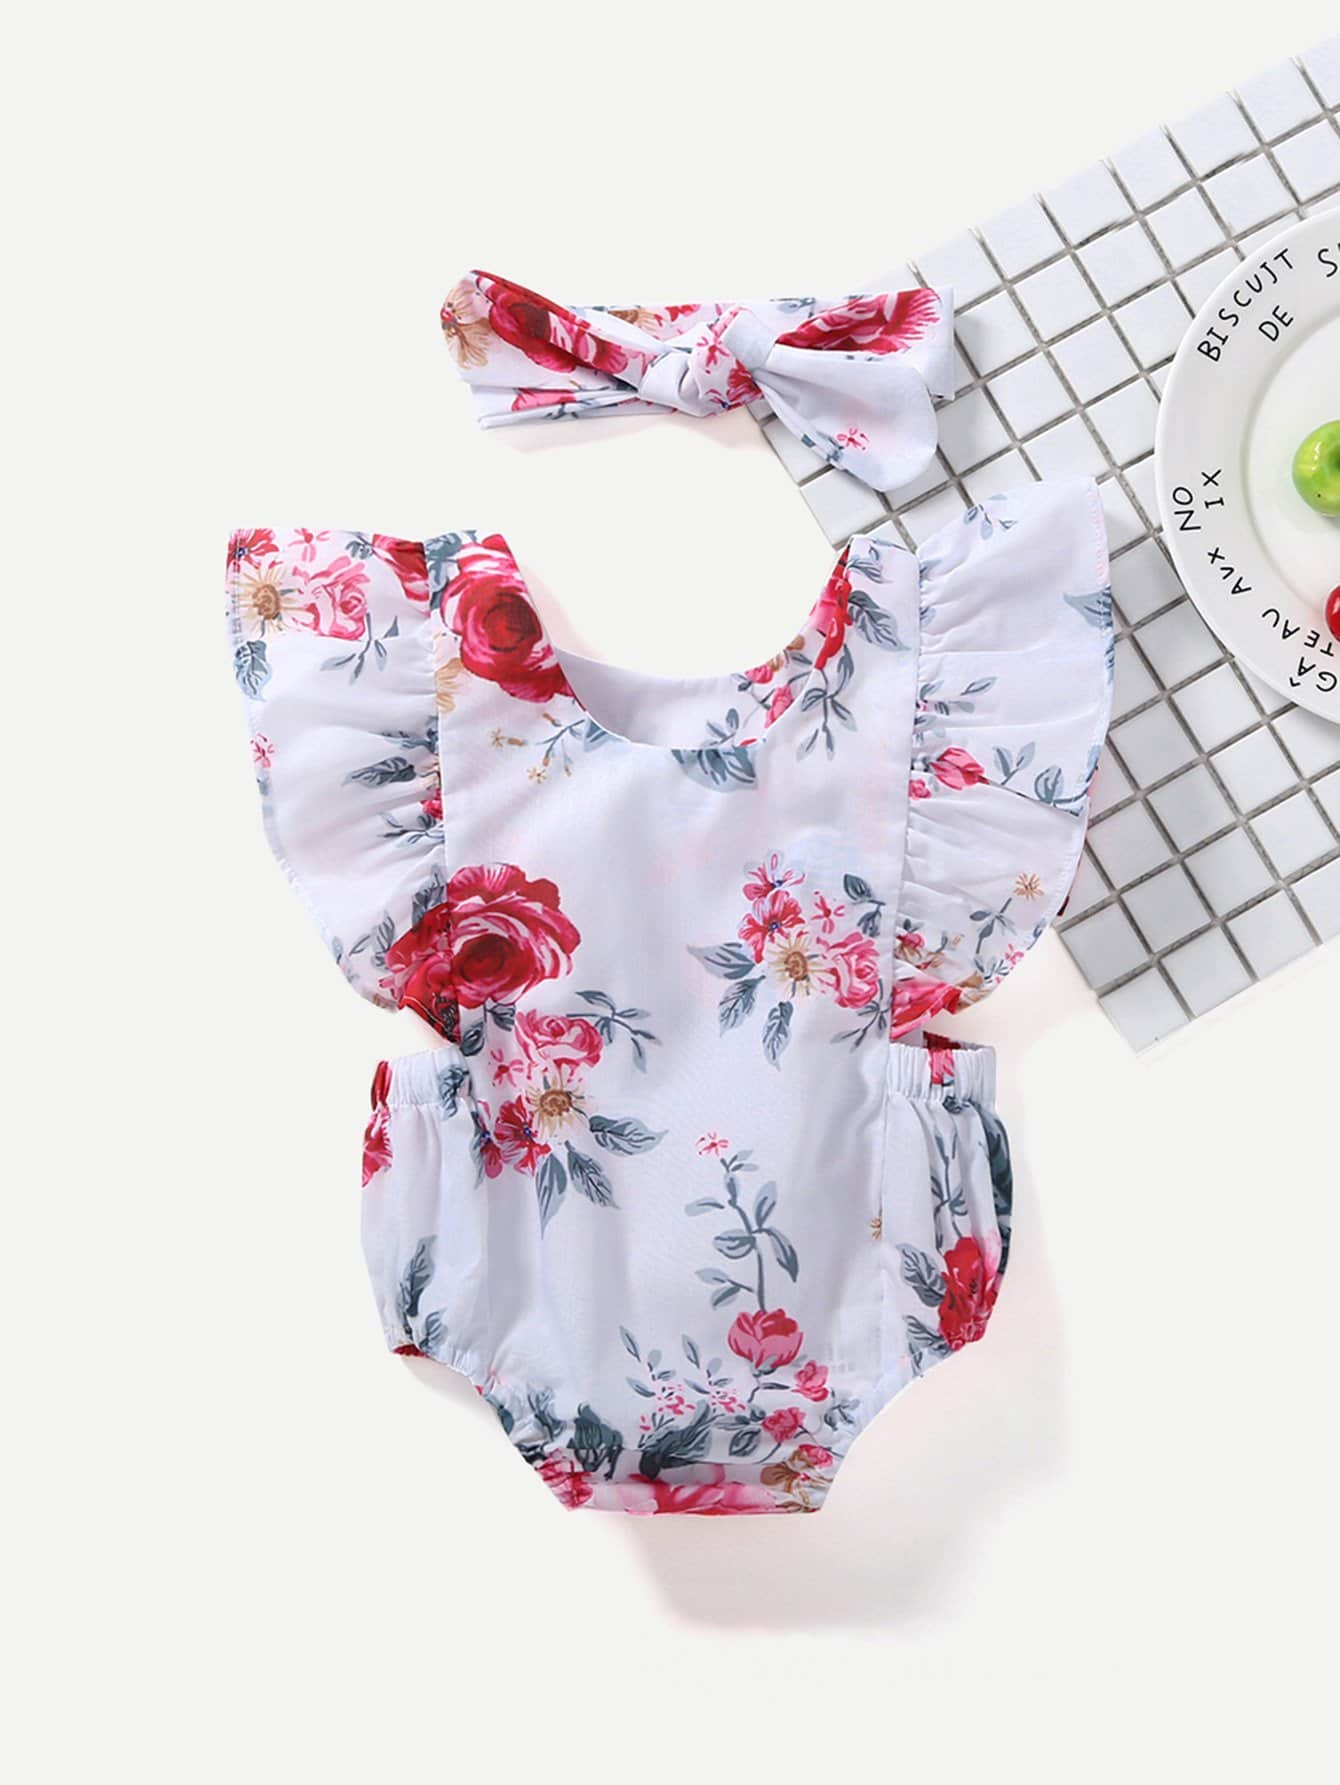 Girls Baby Floral Print Ruffle Romper With Headband newborn baby boy girl infant warm cotton outfit jumpsuit romper bodysuit clothes